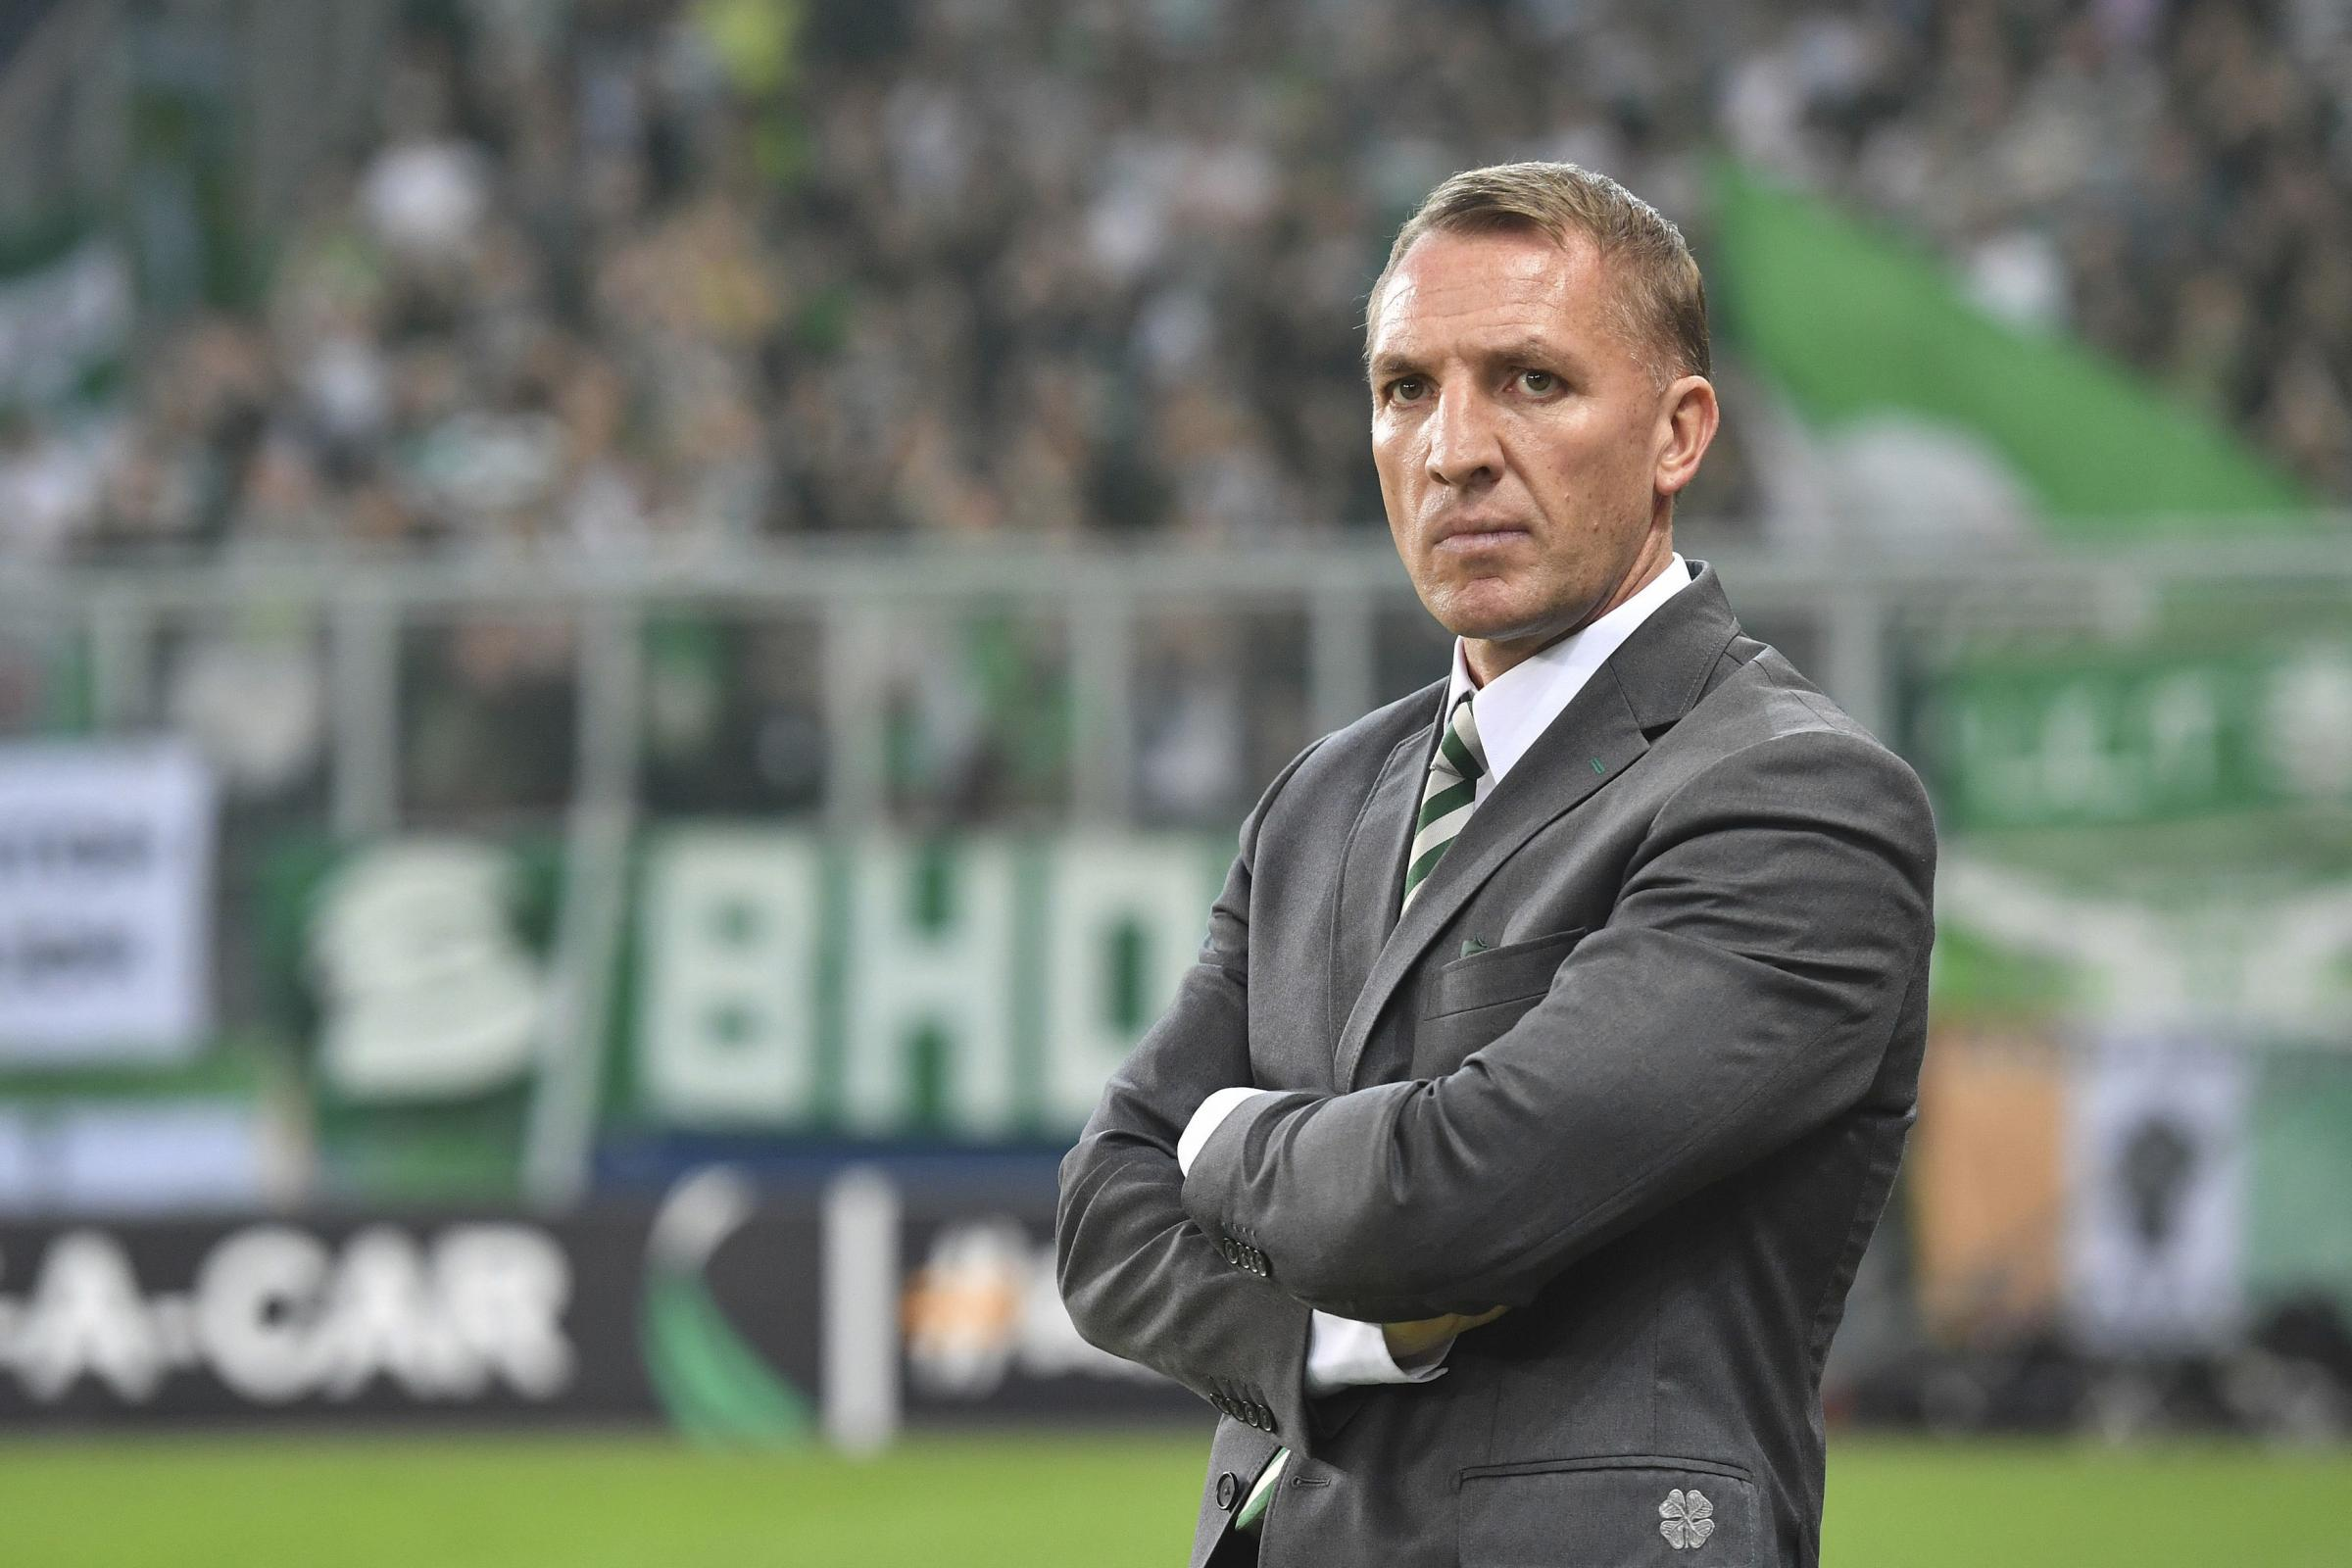 Celtic manager Brendan Rodgers looks on, during the Europa League group B soccer match between FC Salzburg and Celtic FC in the Arena in Salzburg, Austria, Thursday, Oct. 4, 2018. (AP Photo/Kerstin Joensson).